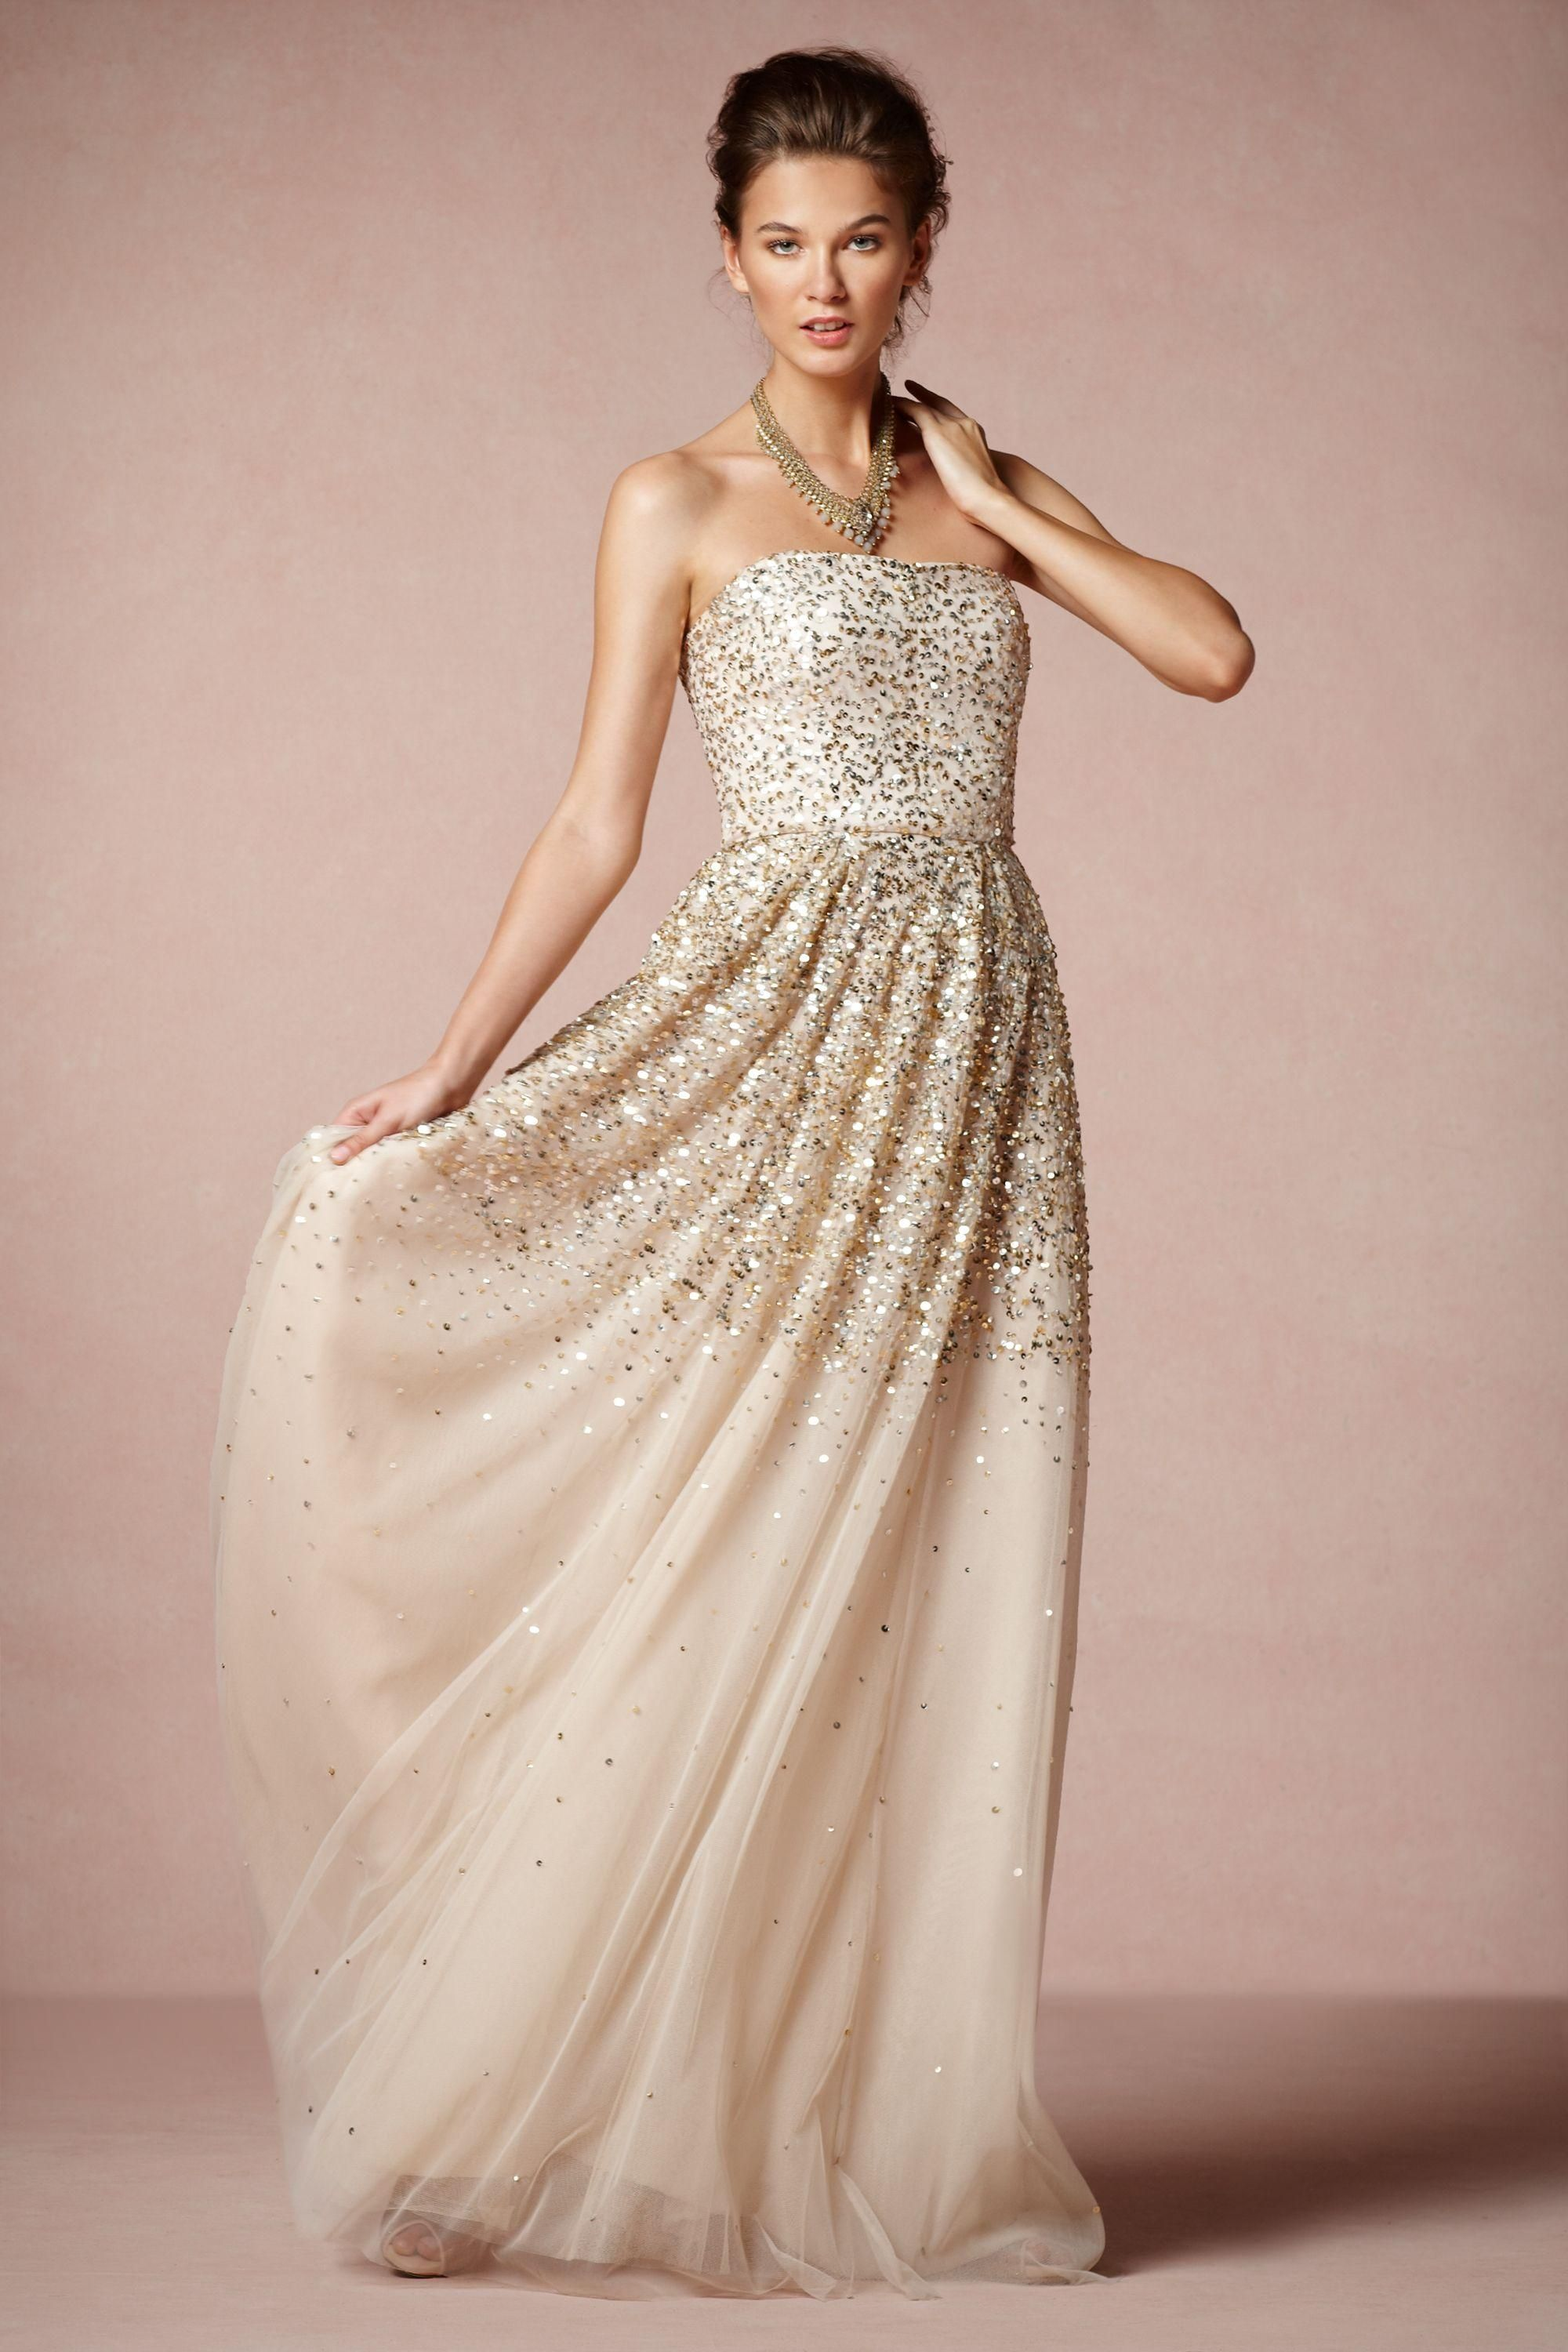 gorgeous gown in champagne | Fashion 2 | Pinterest | Vestiditos ...